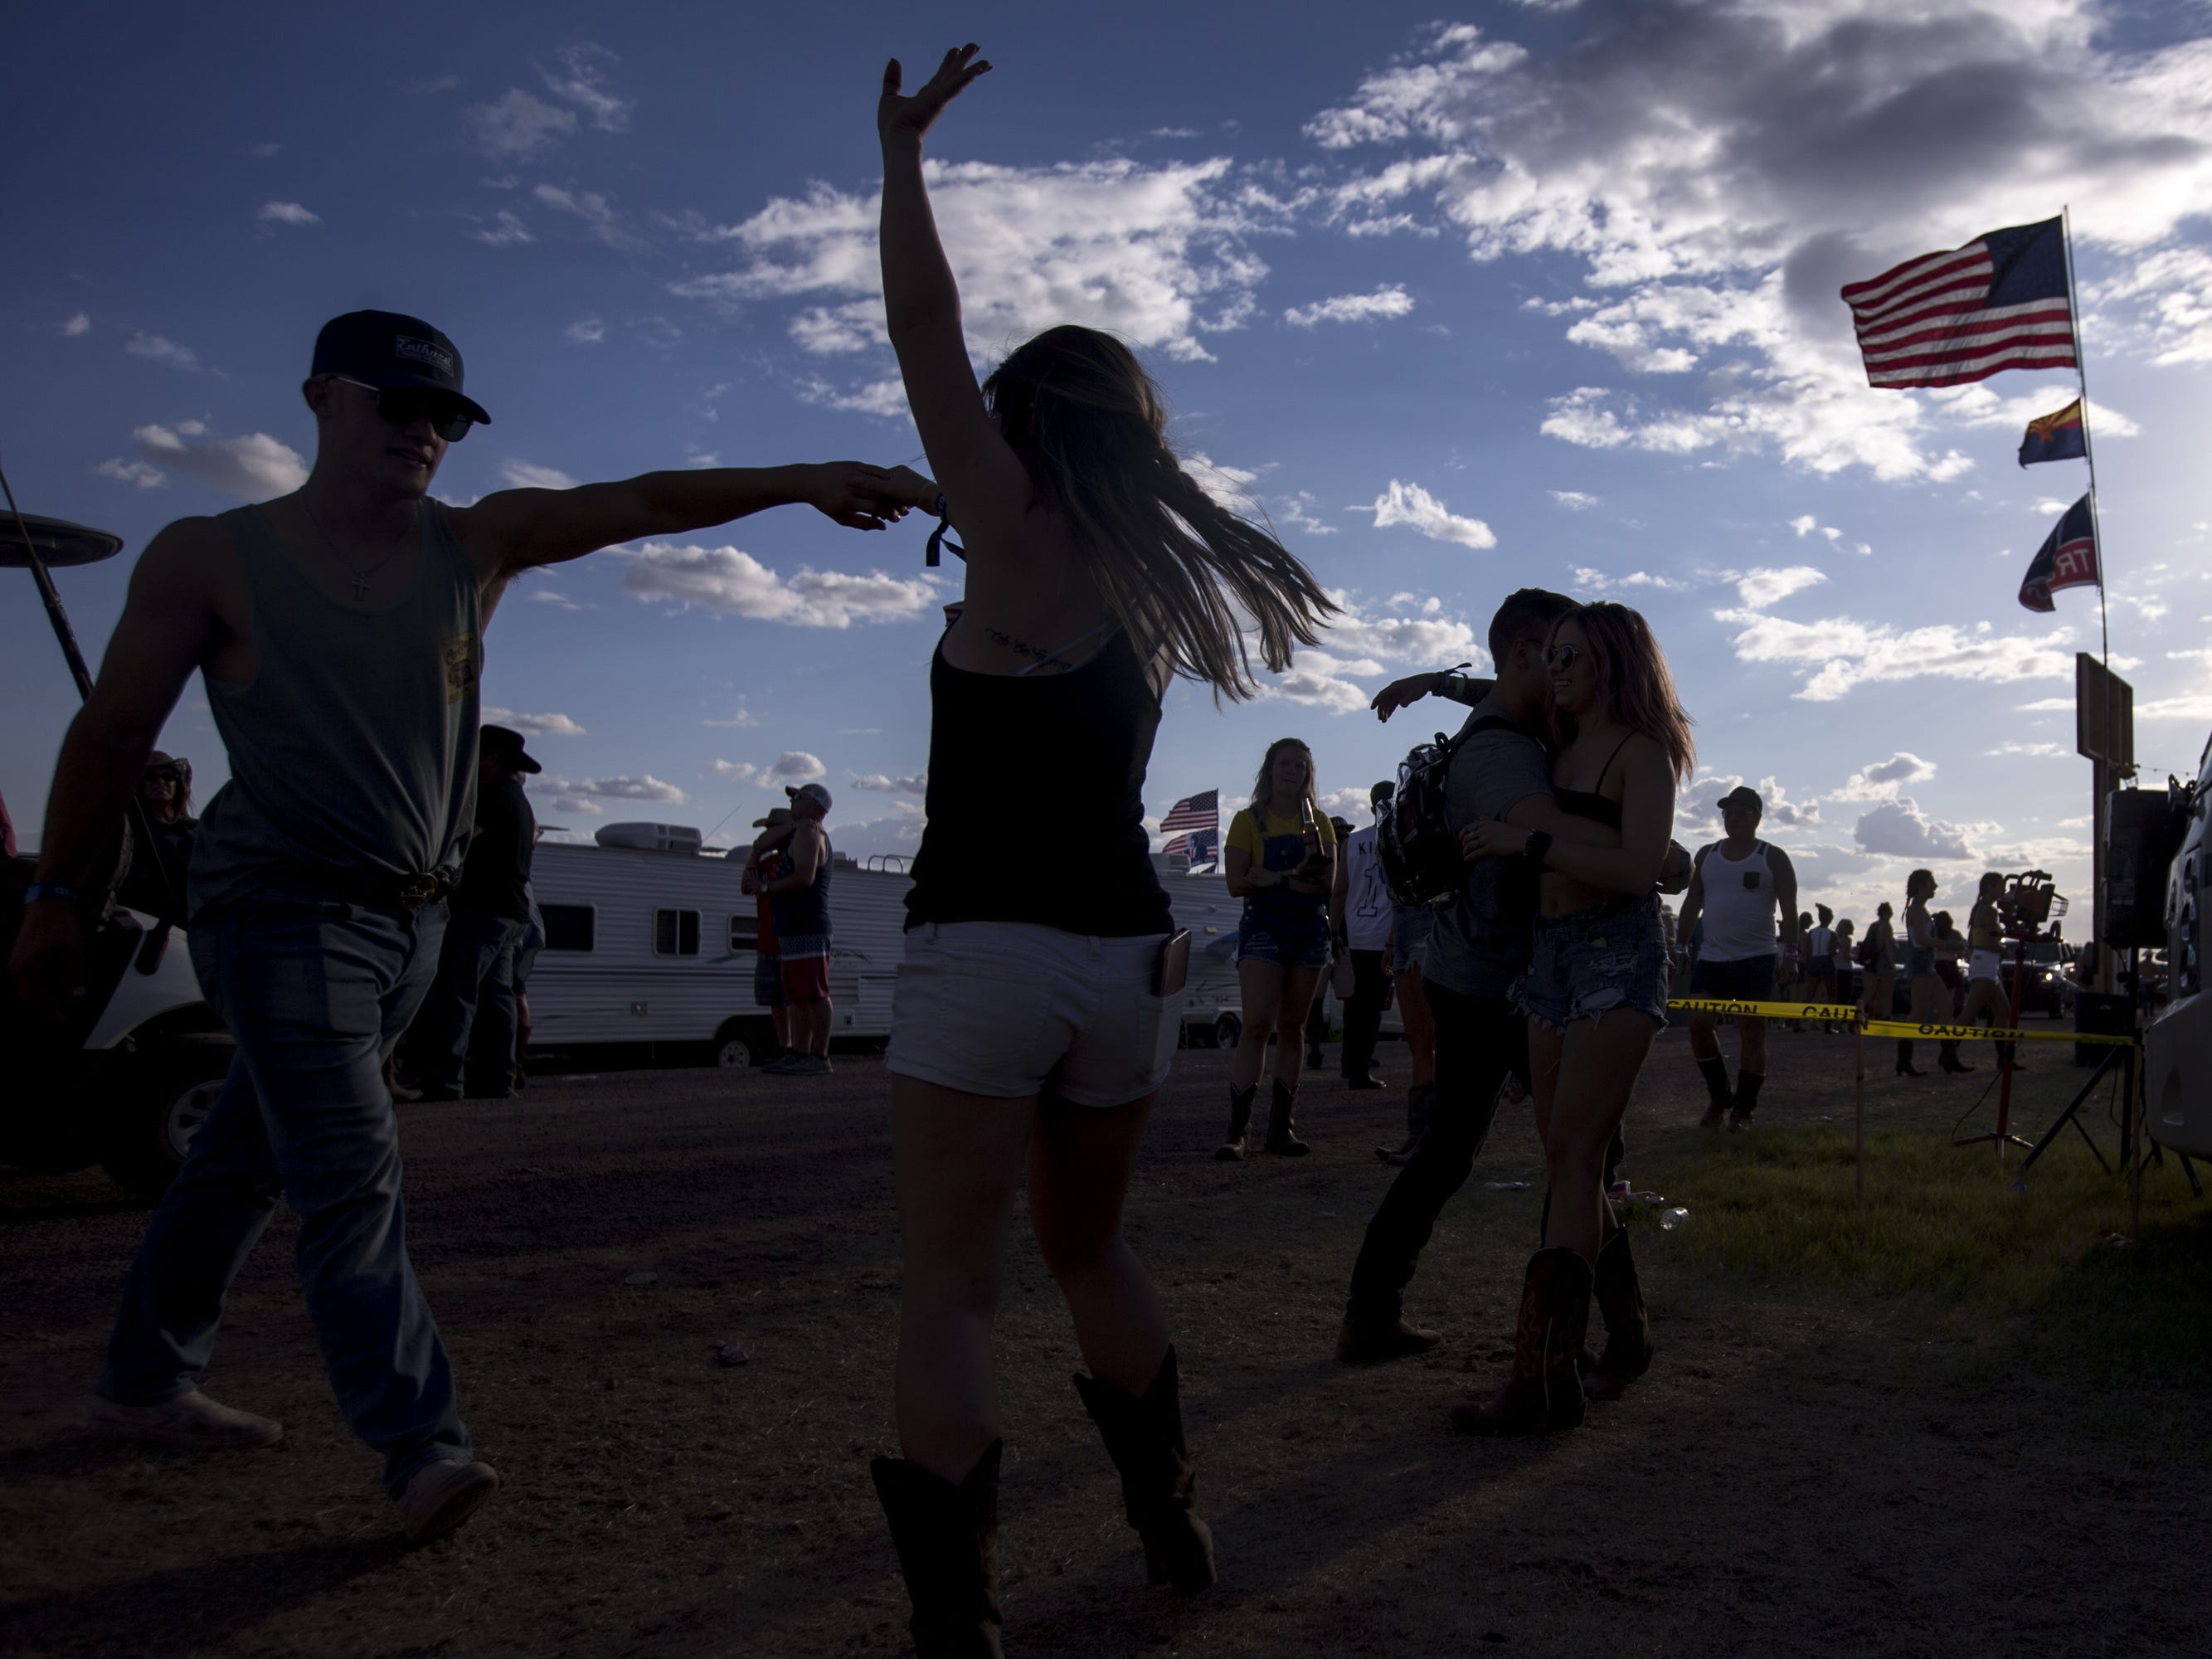 Festival-goers dance at the Crazy Coyote campground on Friday, April 12, 2019, during Day 2 of Country Thunder Arizona in Florence, Ariz.